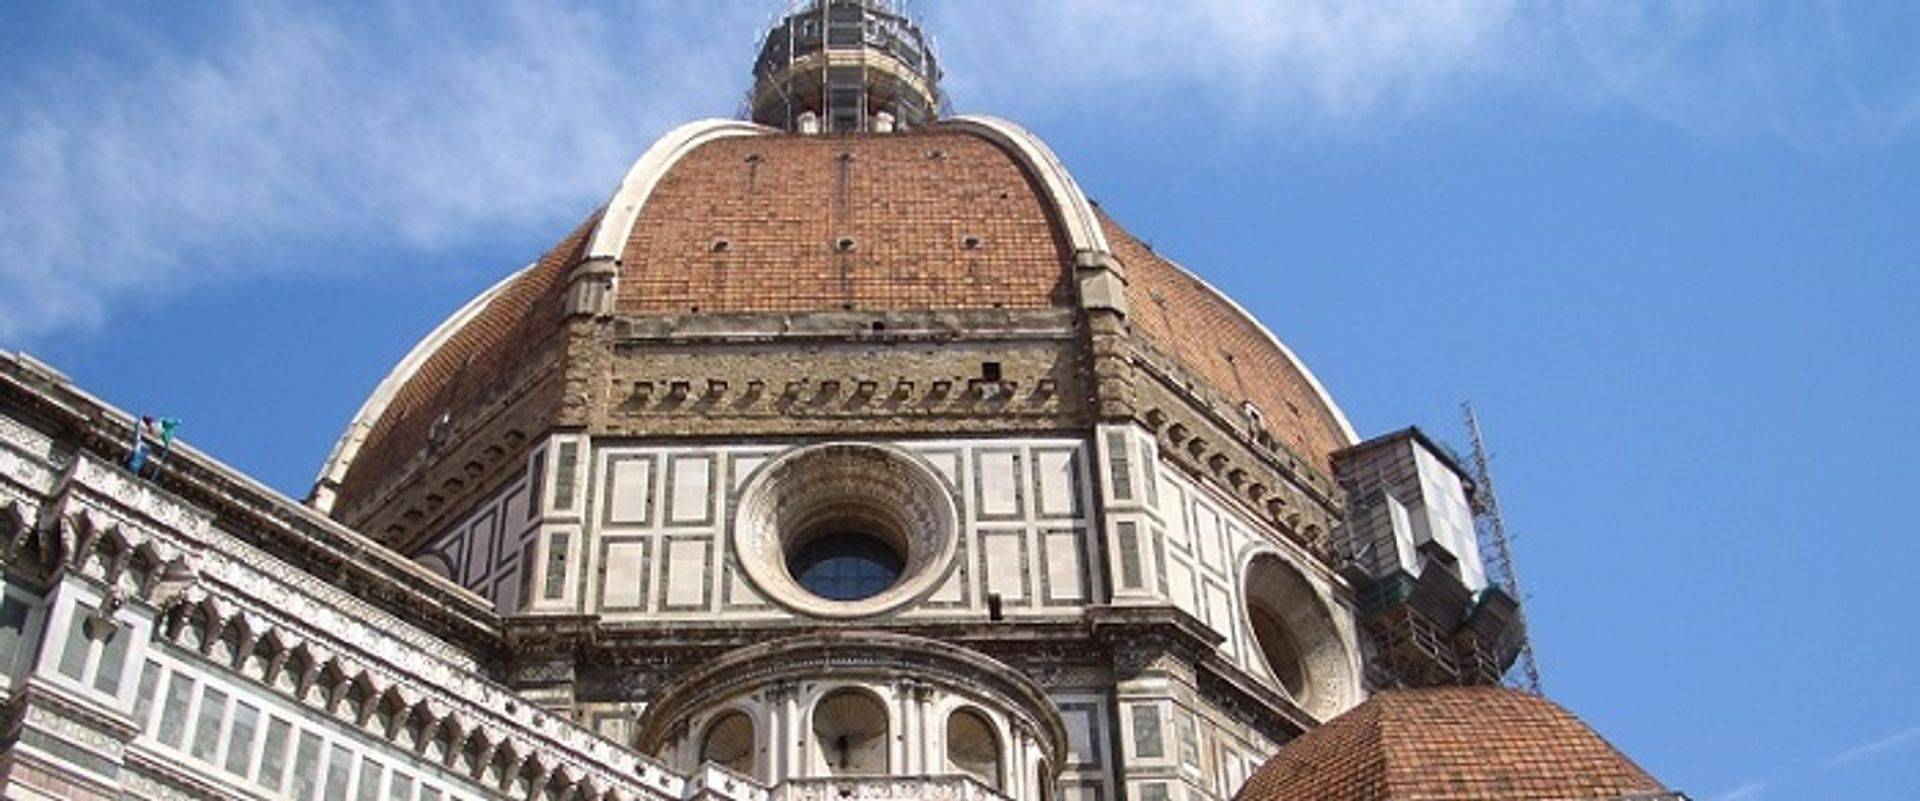 "womens travel.jpg alt= womens travel, dome of the duomo,florence, italy "">"